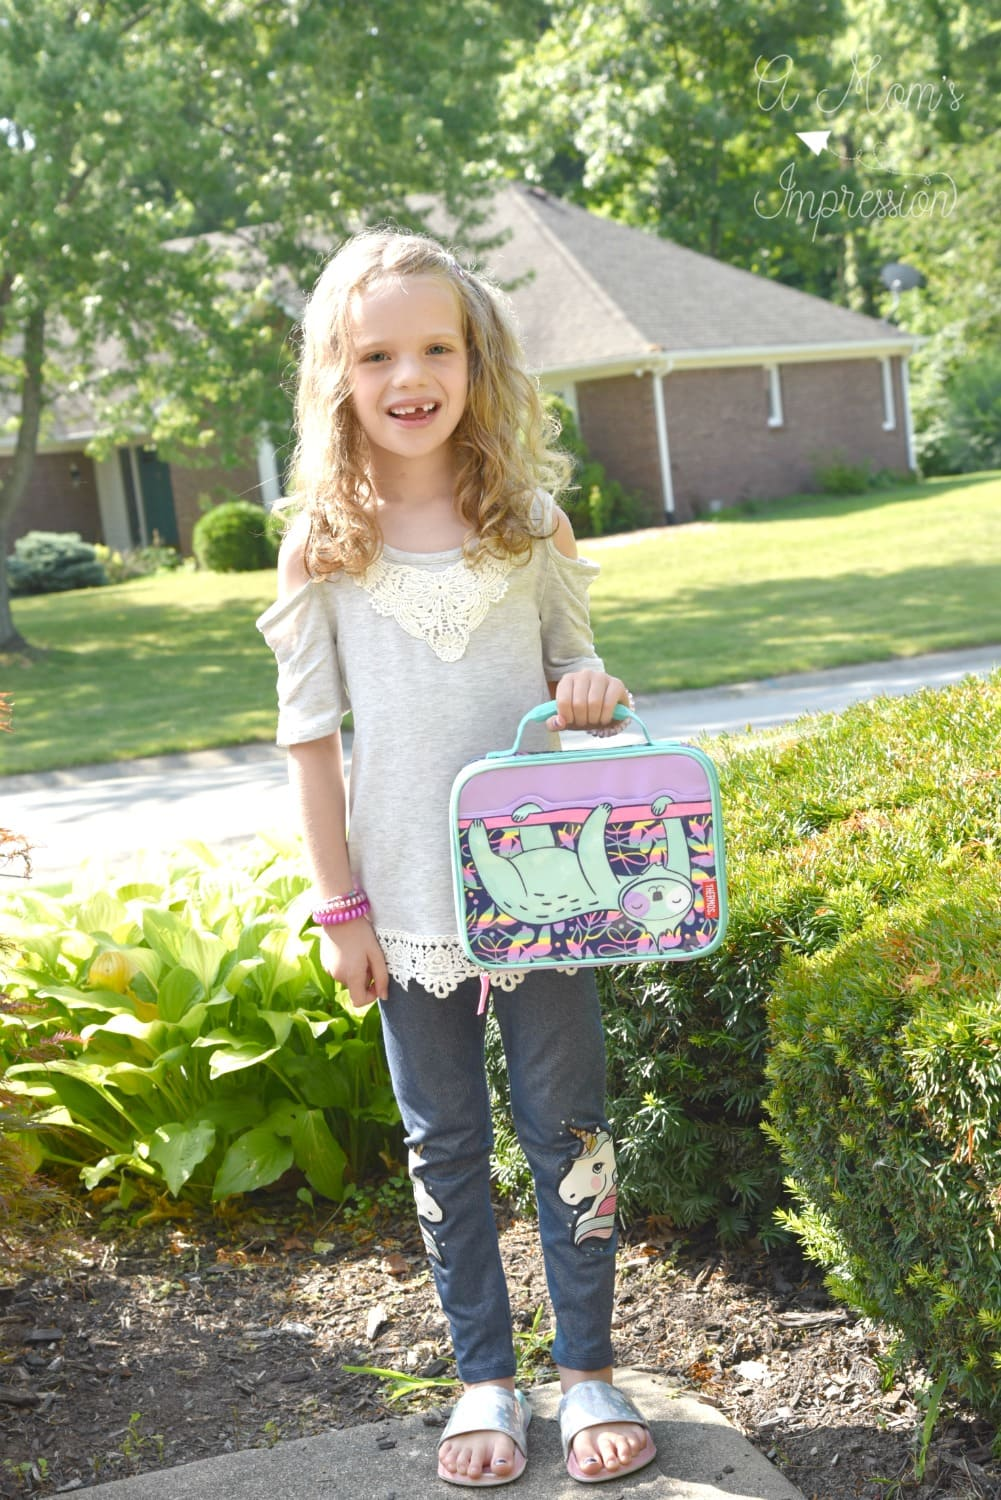 Child holding a lunchbox wearing new clothes